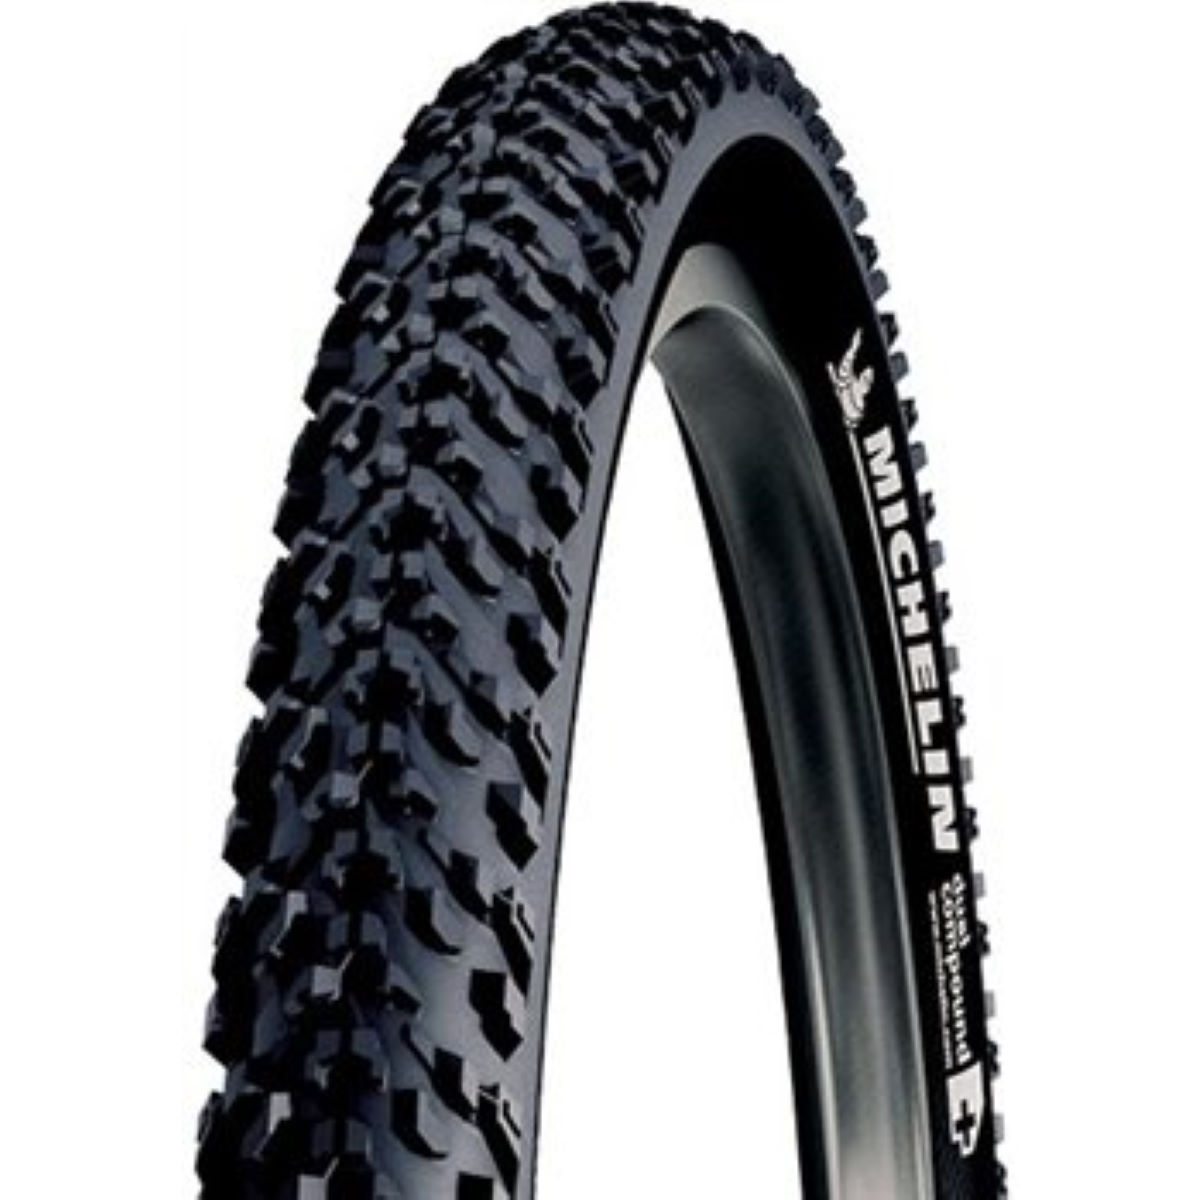 Pneu VTT Michelin Country Dry 2 - 26' 2.0' Wire Bead Noir Pneus VTT